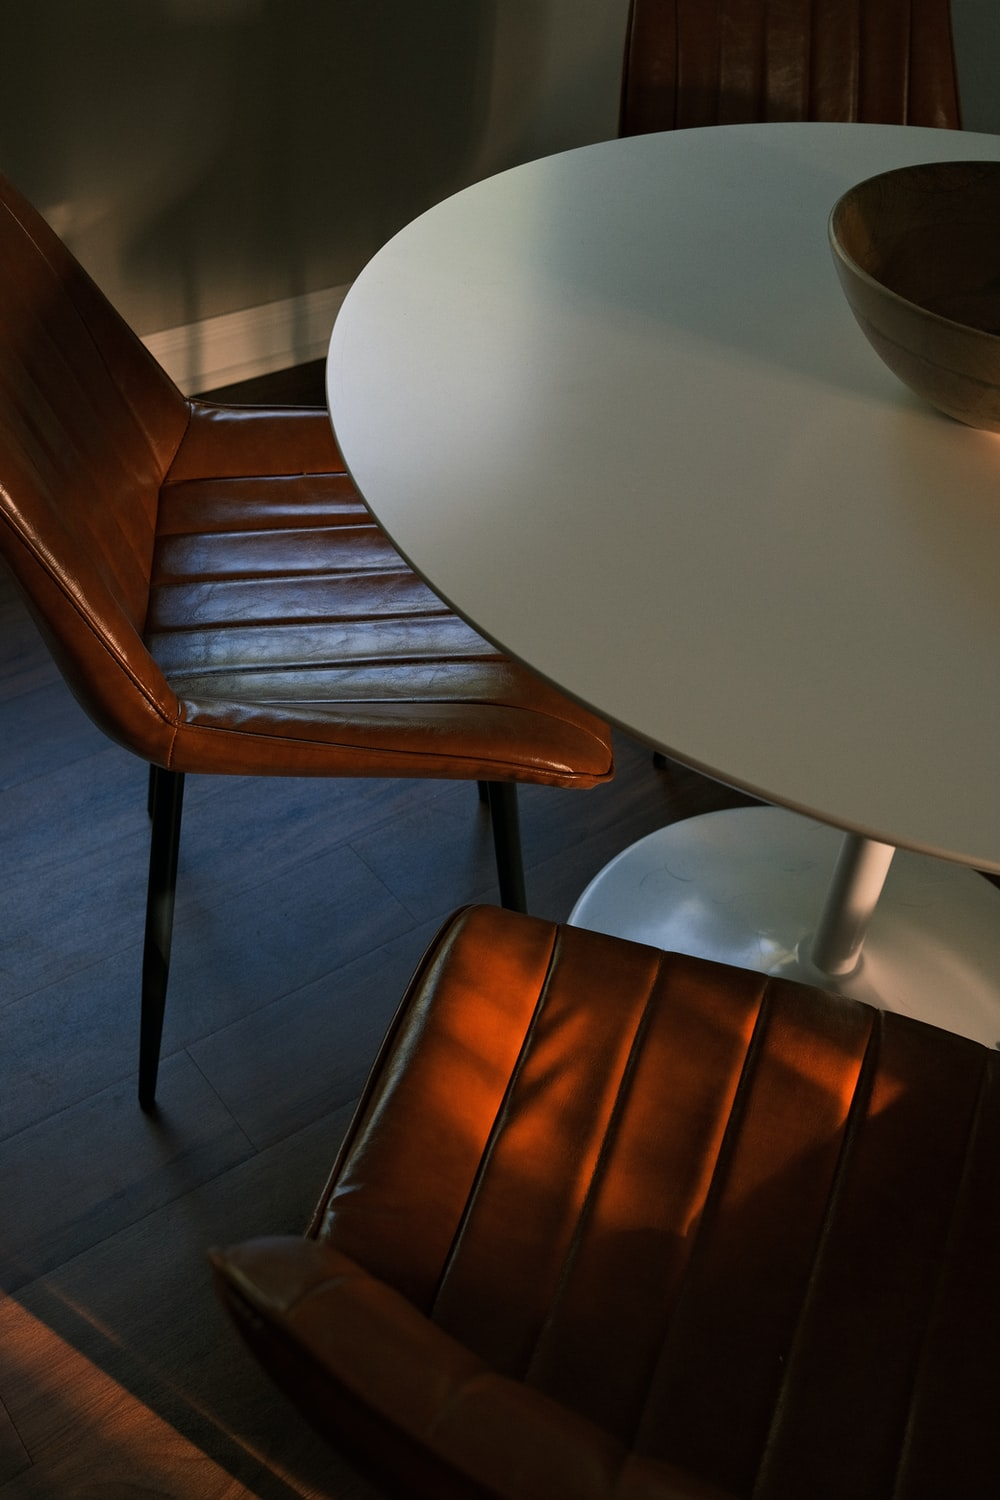 brown wooden chair beside white table